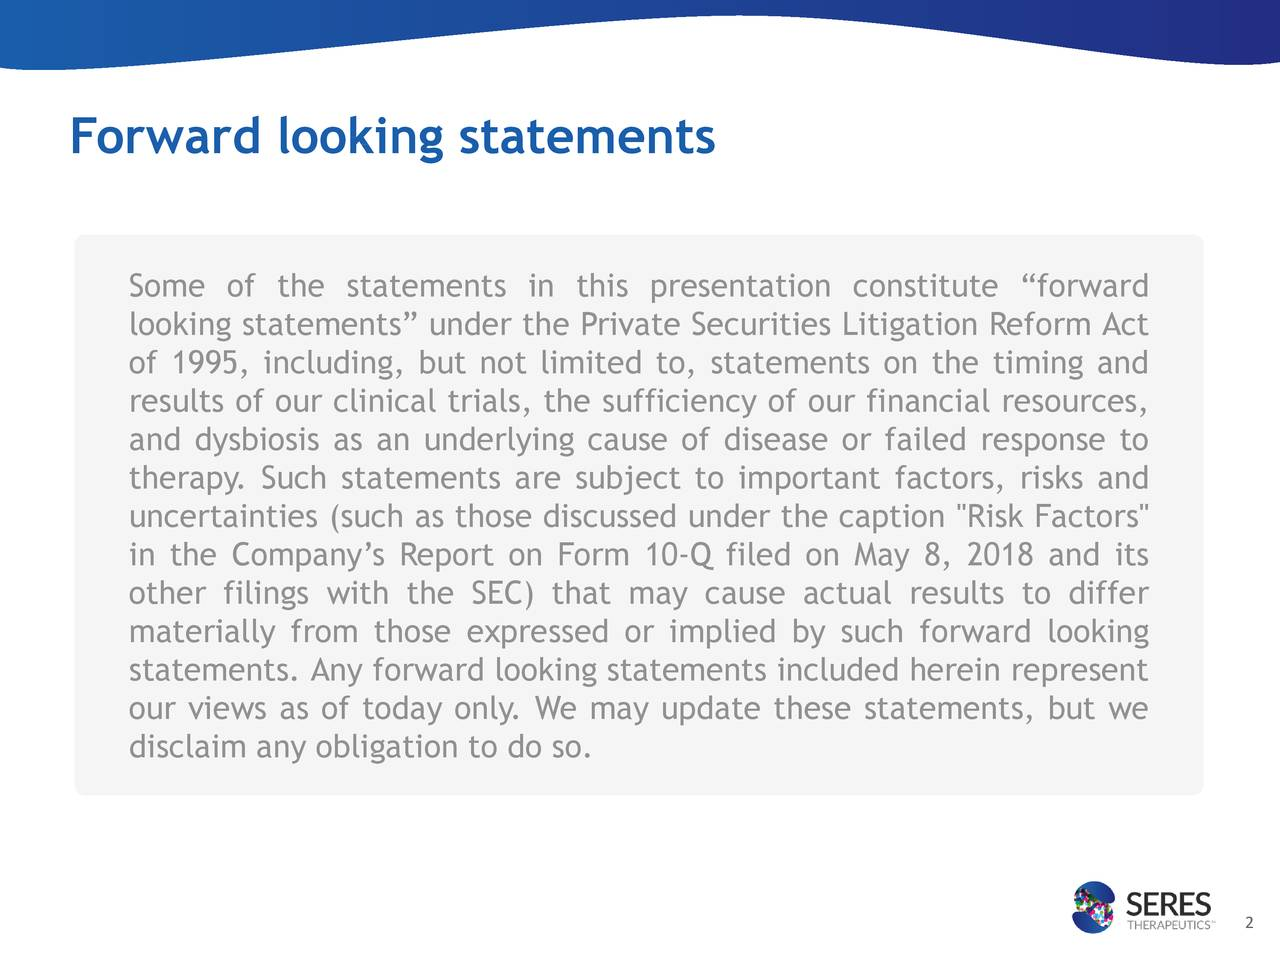 """Some of the statements in this presentation constitute """"forward looking statements"""" under the Private Securities Litigation Reform Act of 1995, including, but not limited to, statements on the timing and results of our clinical trials, the sufficiency of our financial resources, and dysbiosis as an underlying cause of disease or failed response to therapy. Such statements are subject to important factors, risks and uncertainties (such as those discussed under the caption """"Risk Factors"""" in the Company's Report on Form 10-Q filed on May 8, 2018 and its other filings with the SEC) that may cause actual results to differ materially from those expressed or implied by such forward looking statements. Any forward looking statements included herein represent our views as of today only. We may update these statements, but we disclaim any obligation to do so. 2"""